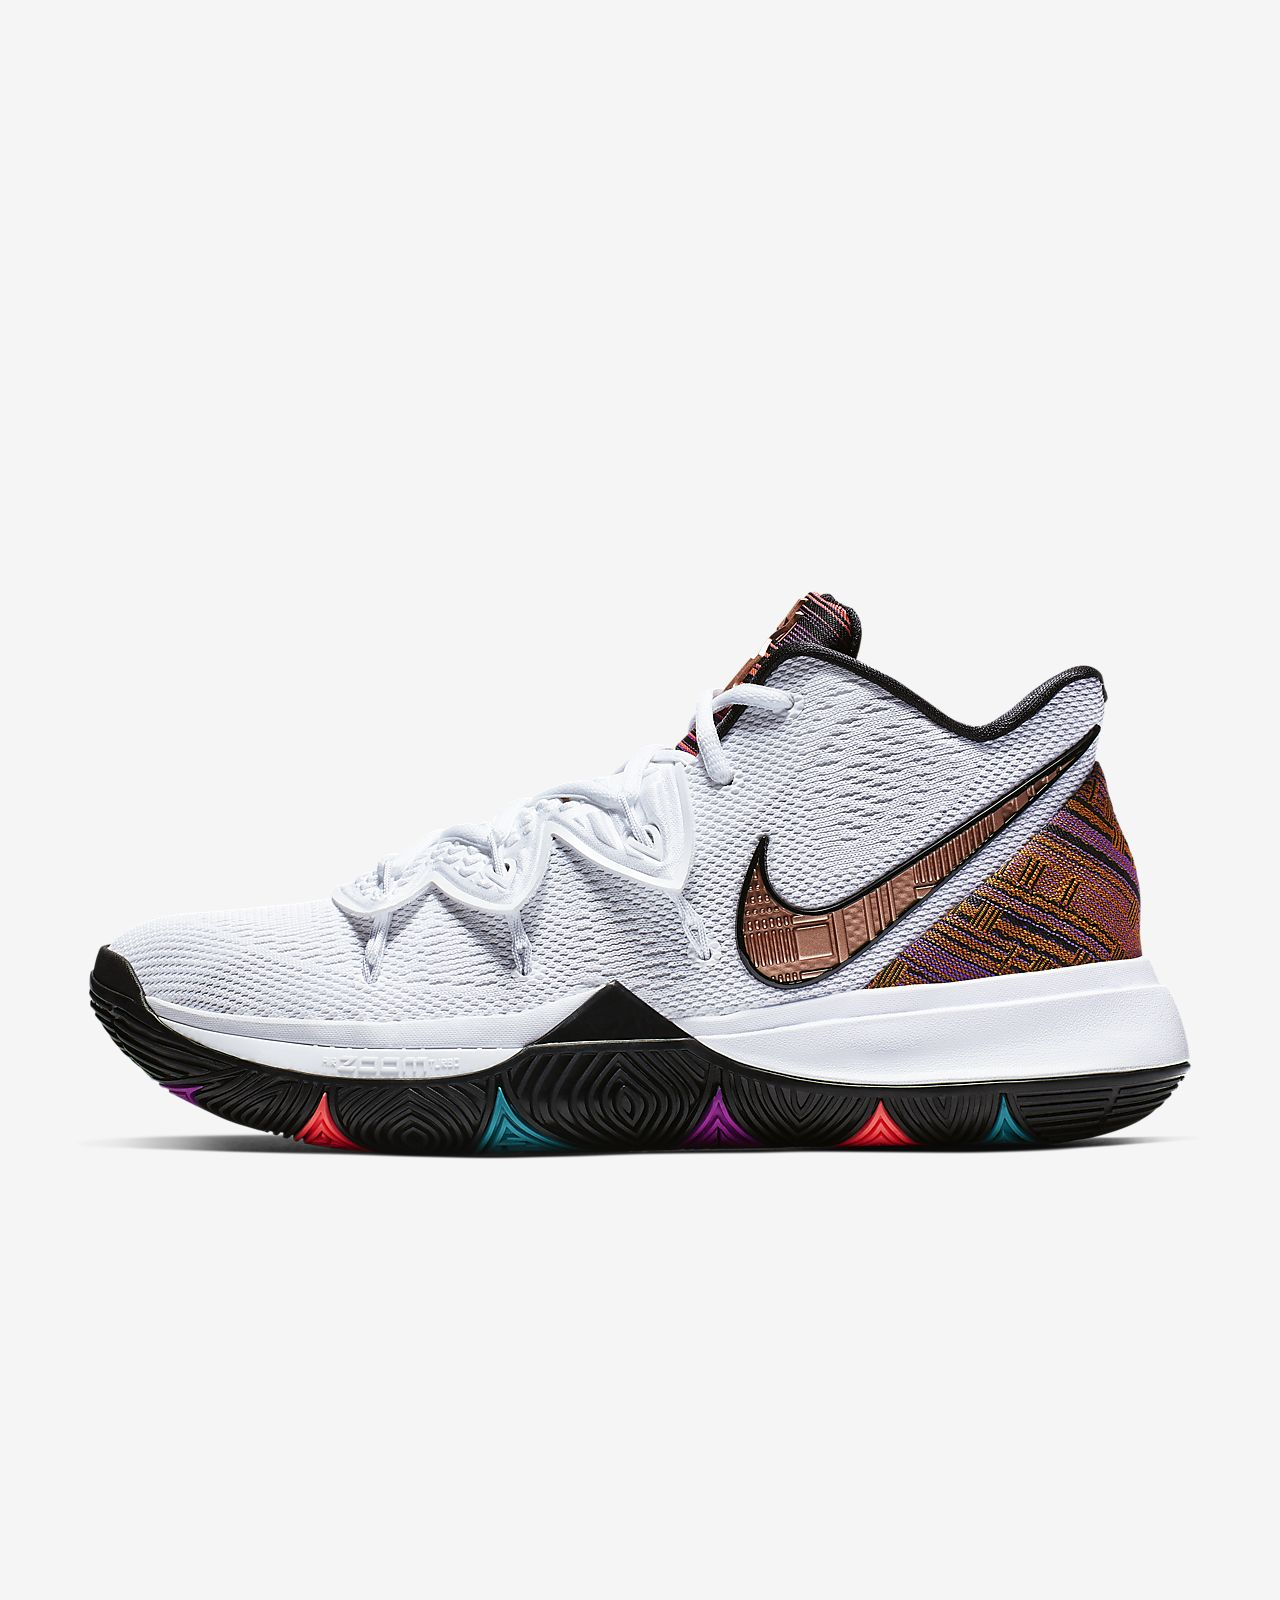 17aaa0e10f Kyrie 5 BHM Basketball Shoe